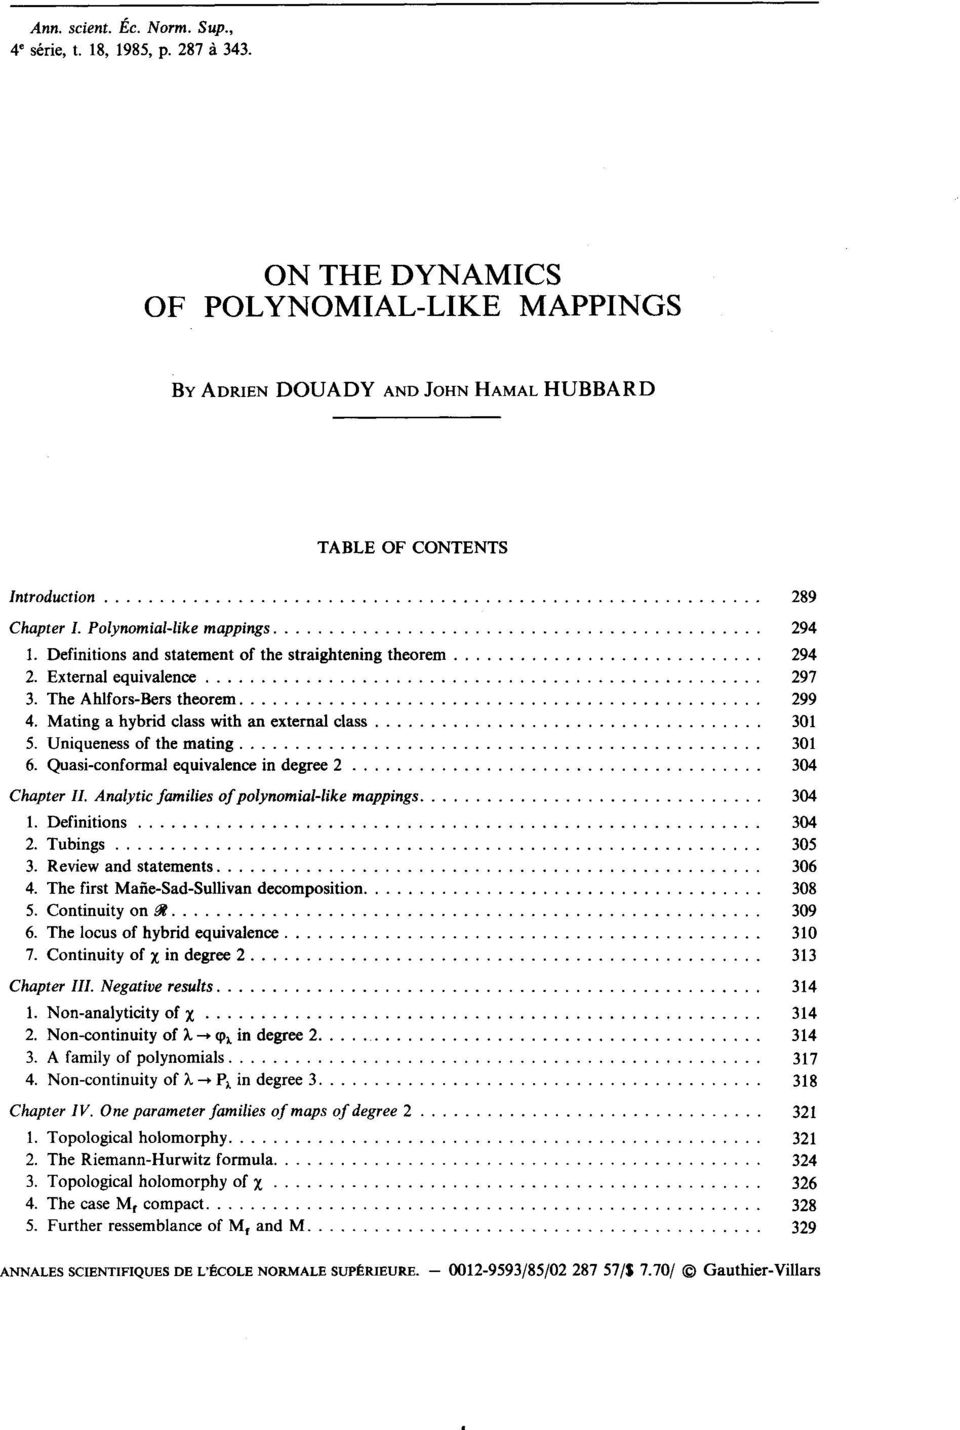 Mating a hybrid class with an external class... 301 5. Uniqueness of the mating... 301 6. Quasi-conformal equivalence in degree 2... 304 Chapter II. Analytic families of polynomial-like mappings.